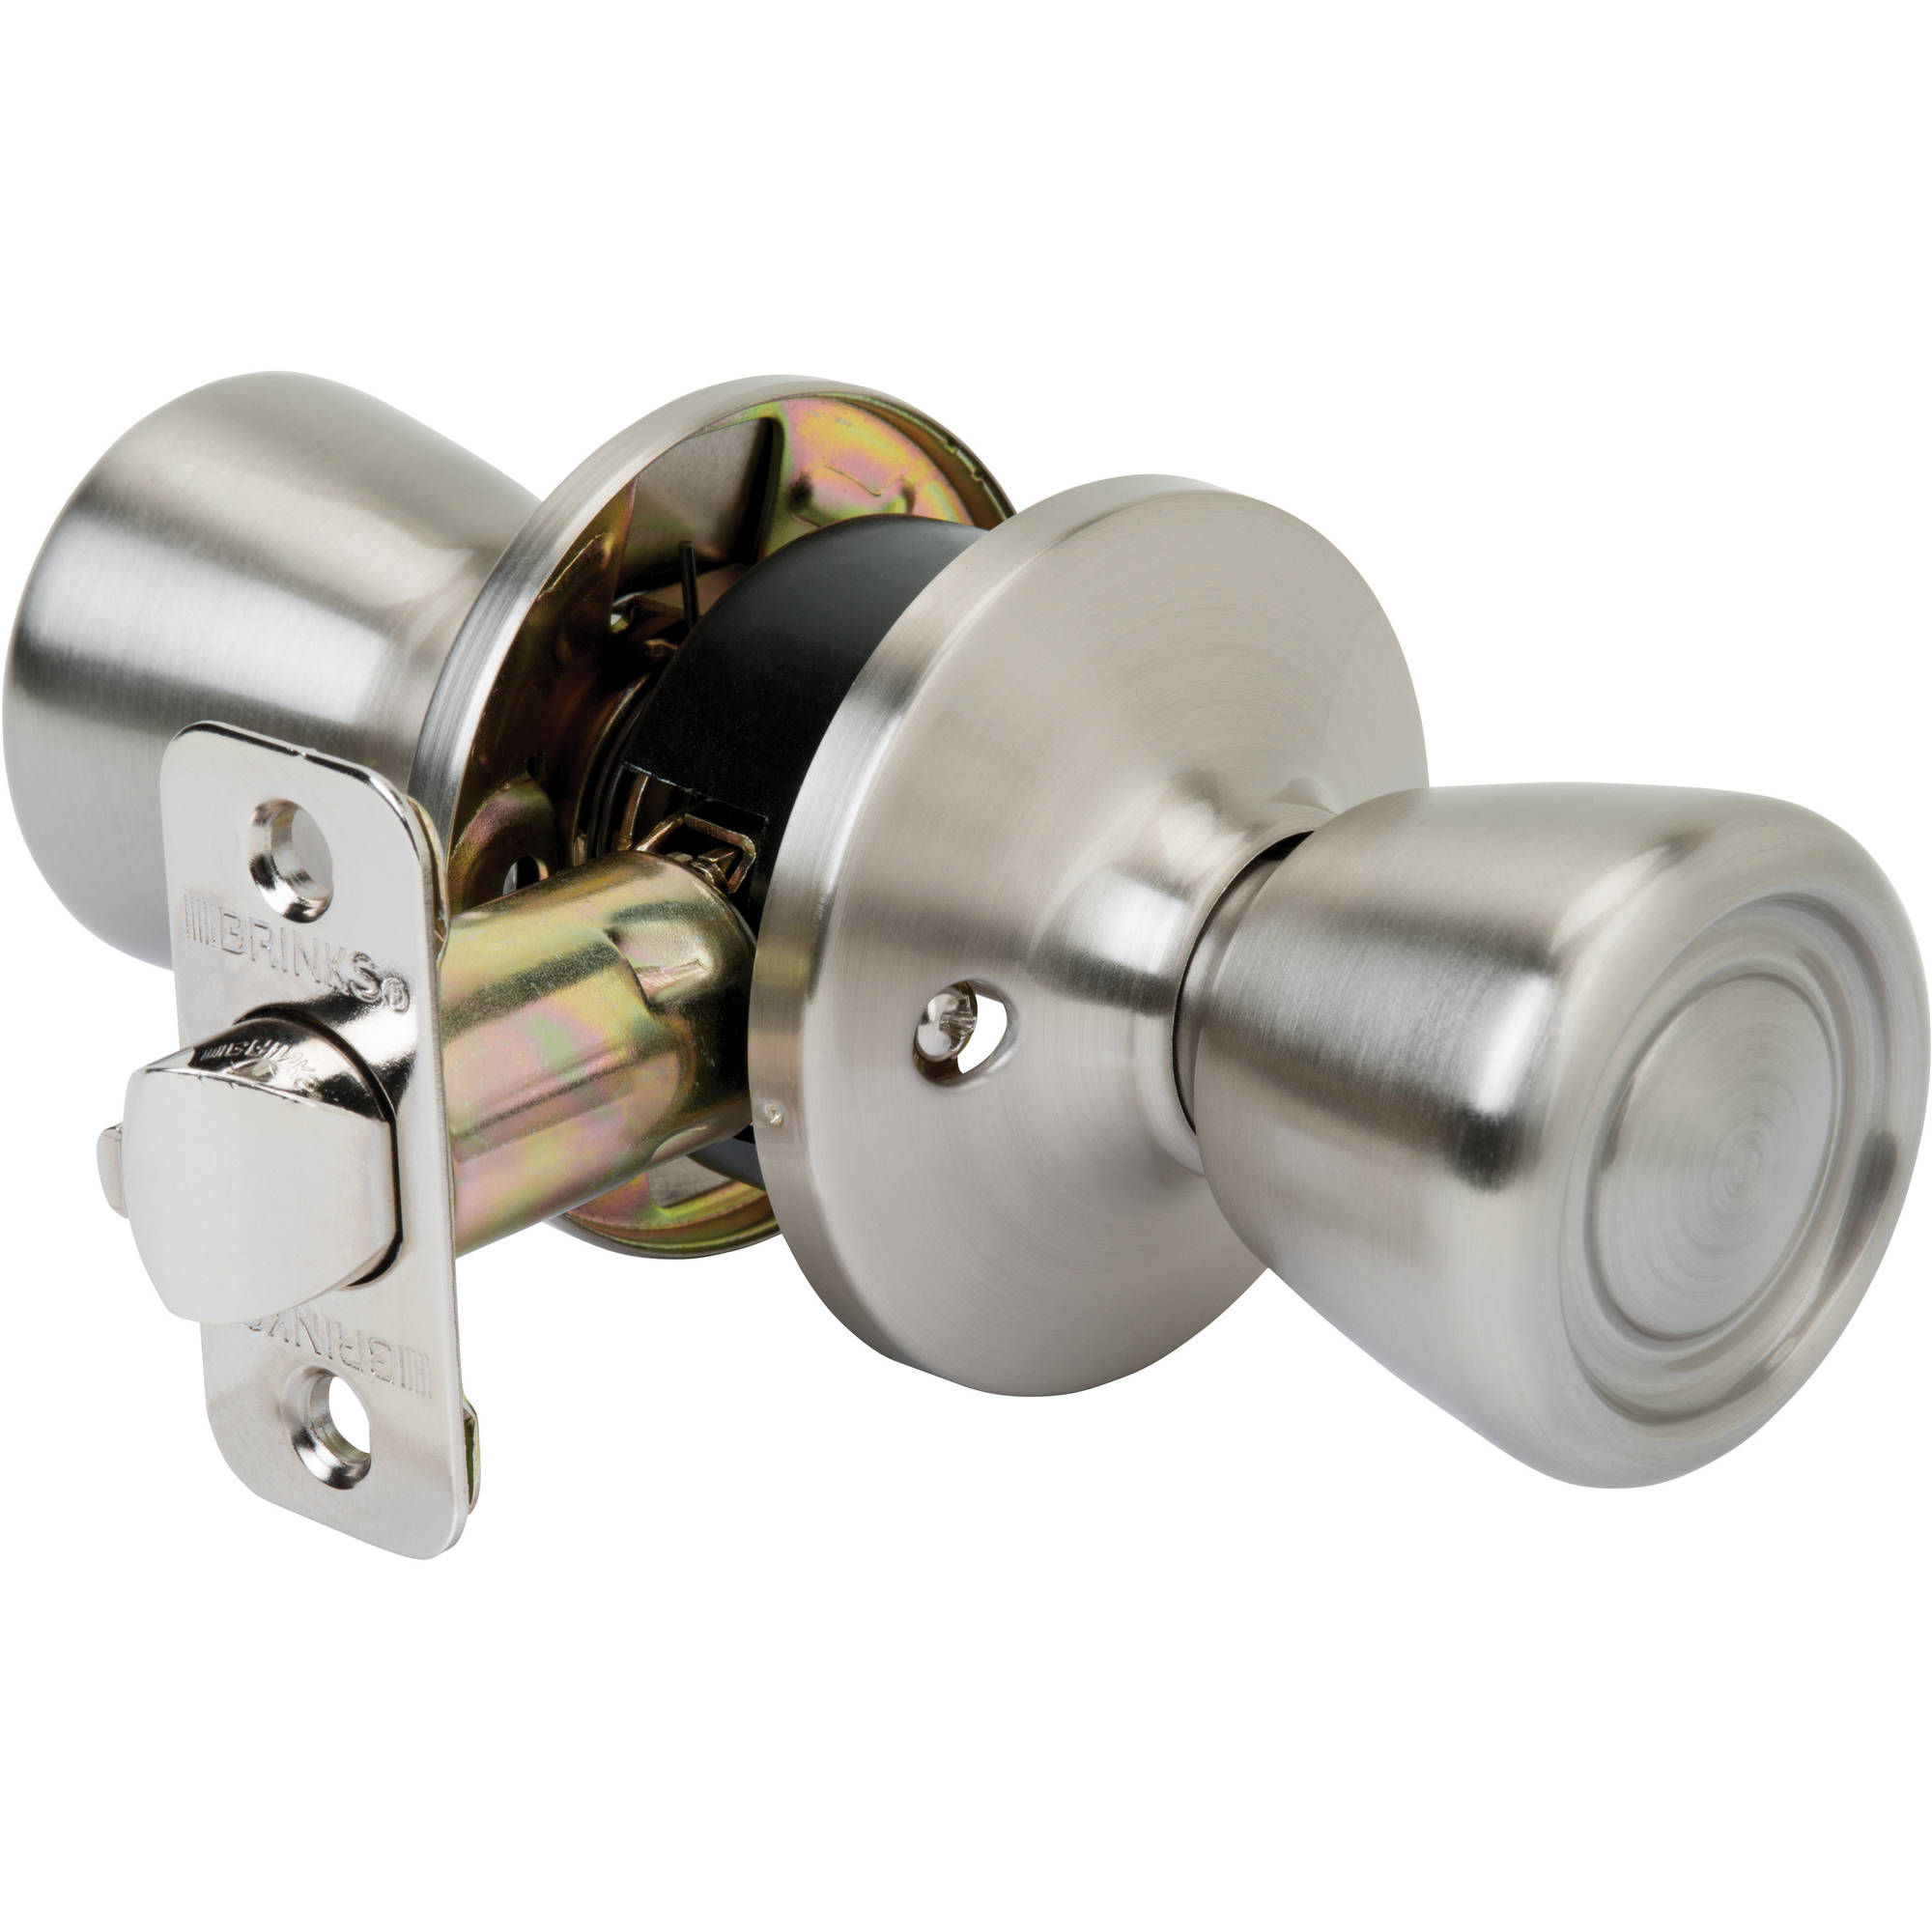 Brinks Tulip Style Passage Hall & Closet Door Knob, Satin Nickel